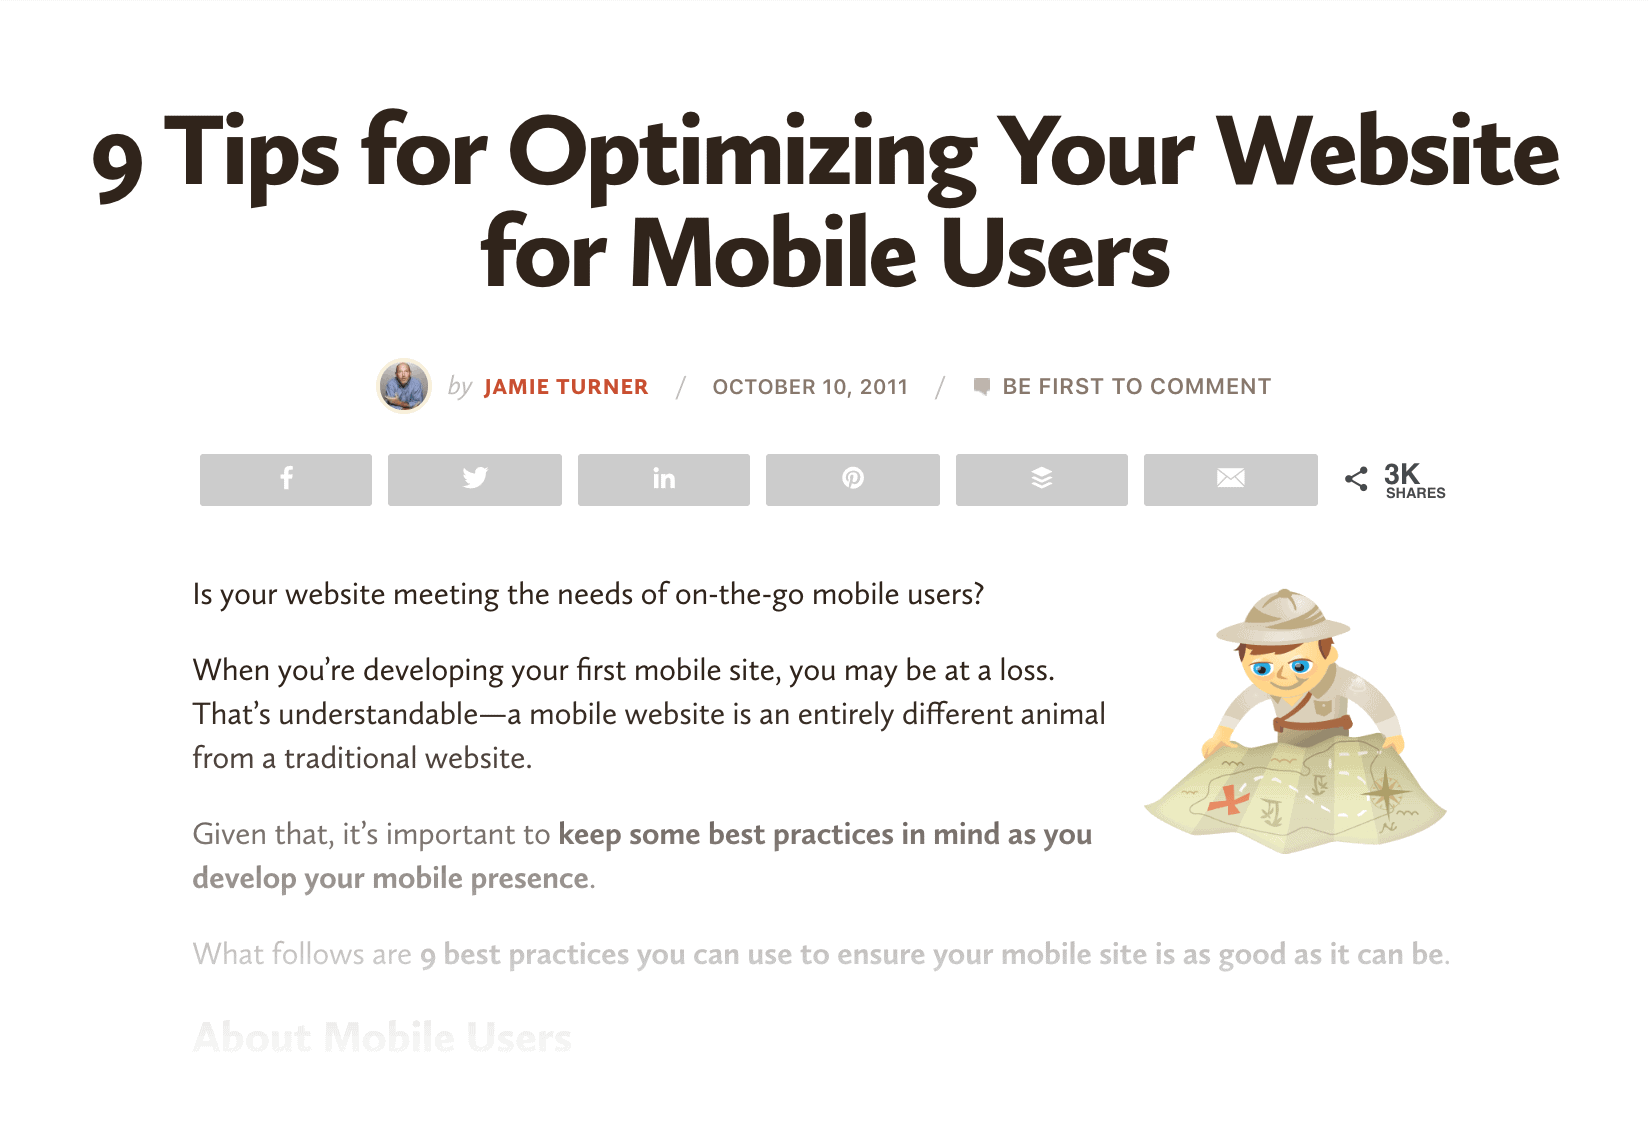 Existing mobile SEO content